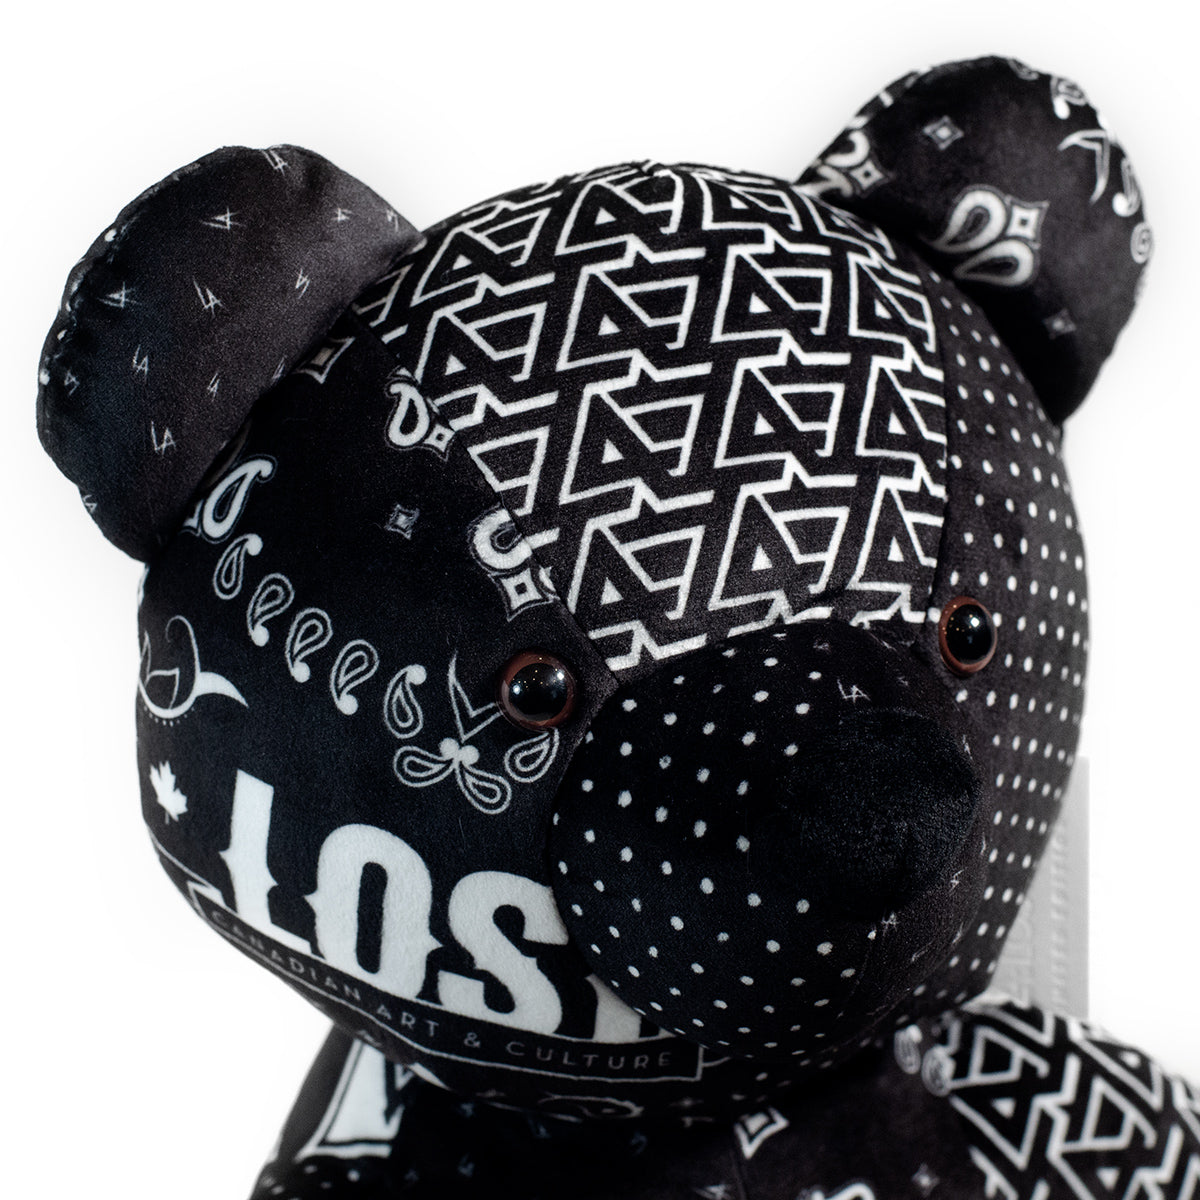 Lost Art Canada - black white patterned teddy bear close up view